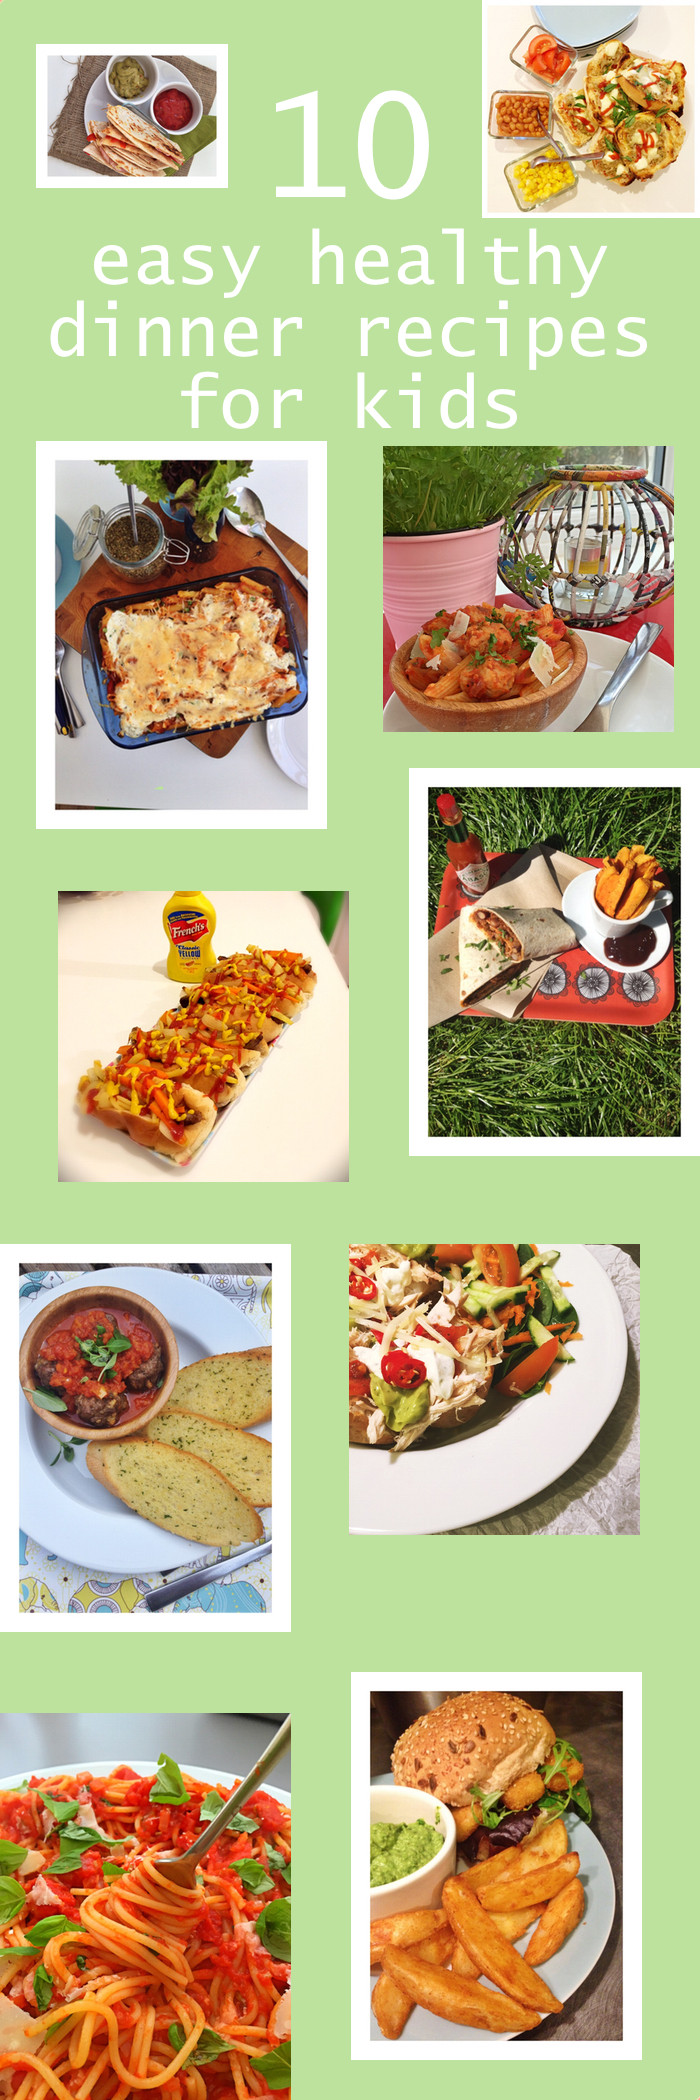 Healthy Dinner Recipes For Kids  10 easy healthy dinner recipes for kids